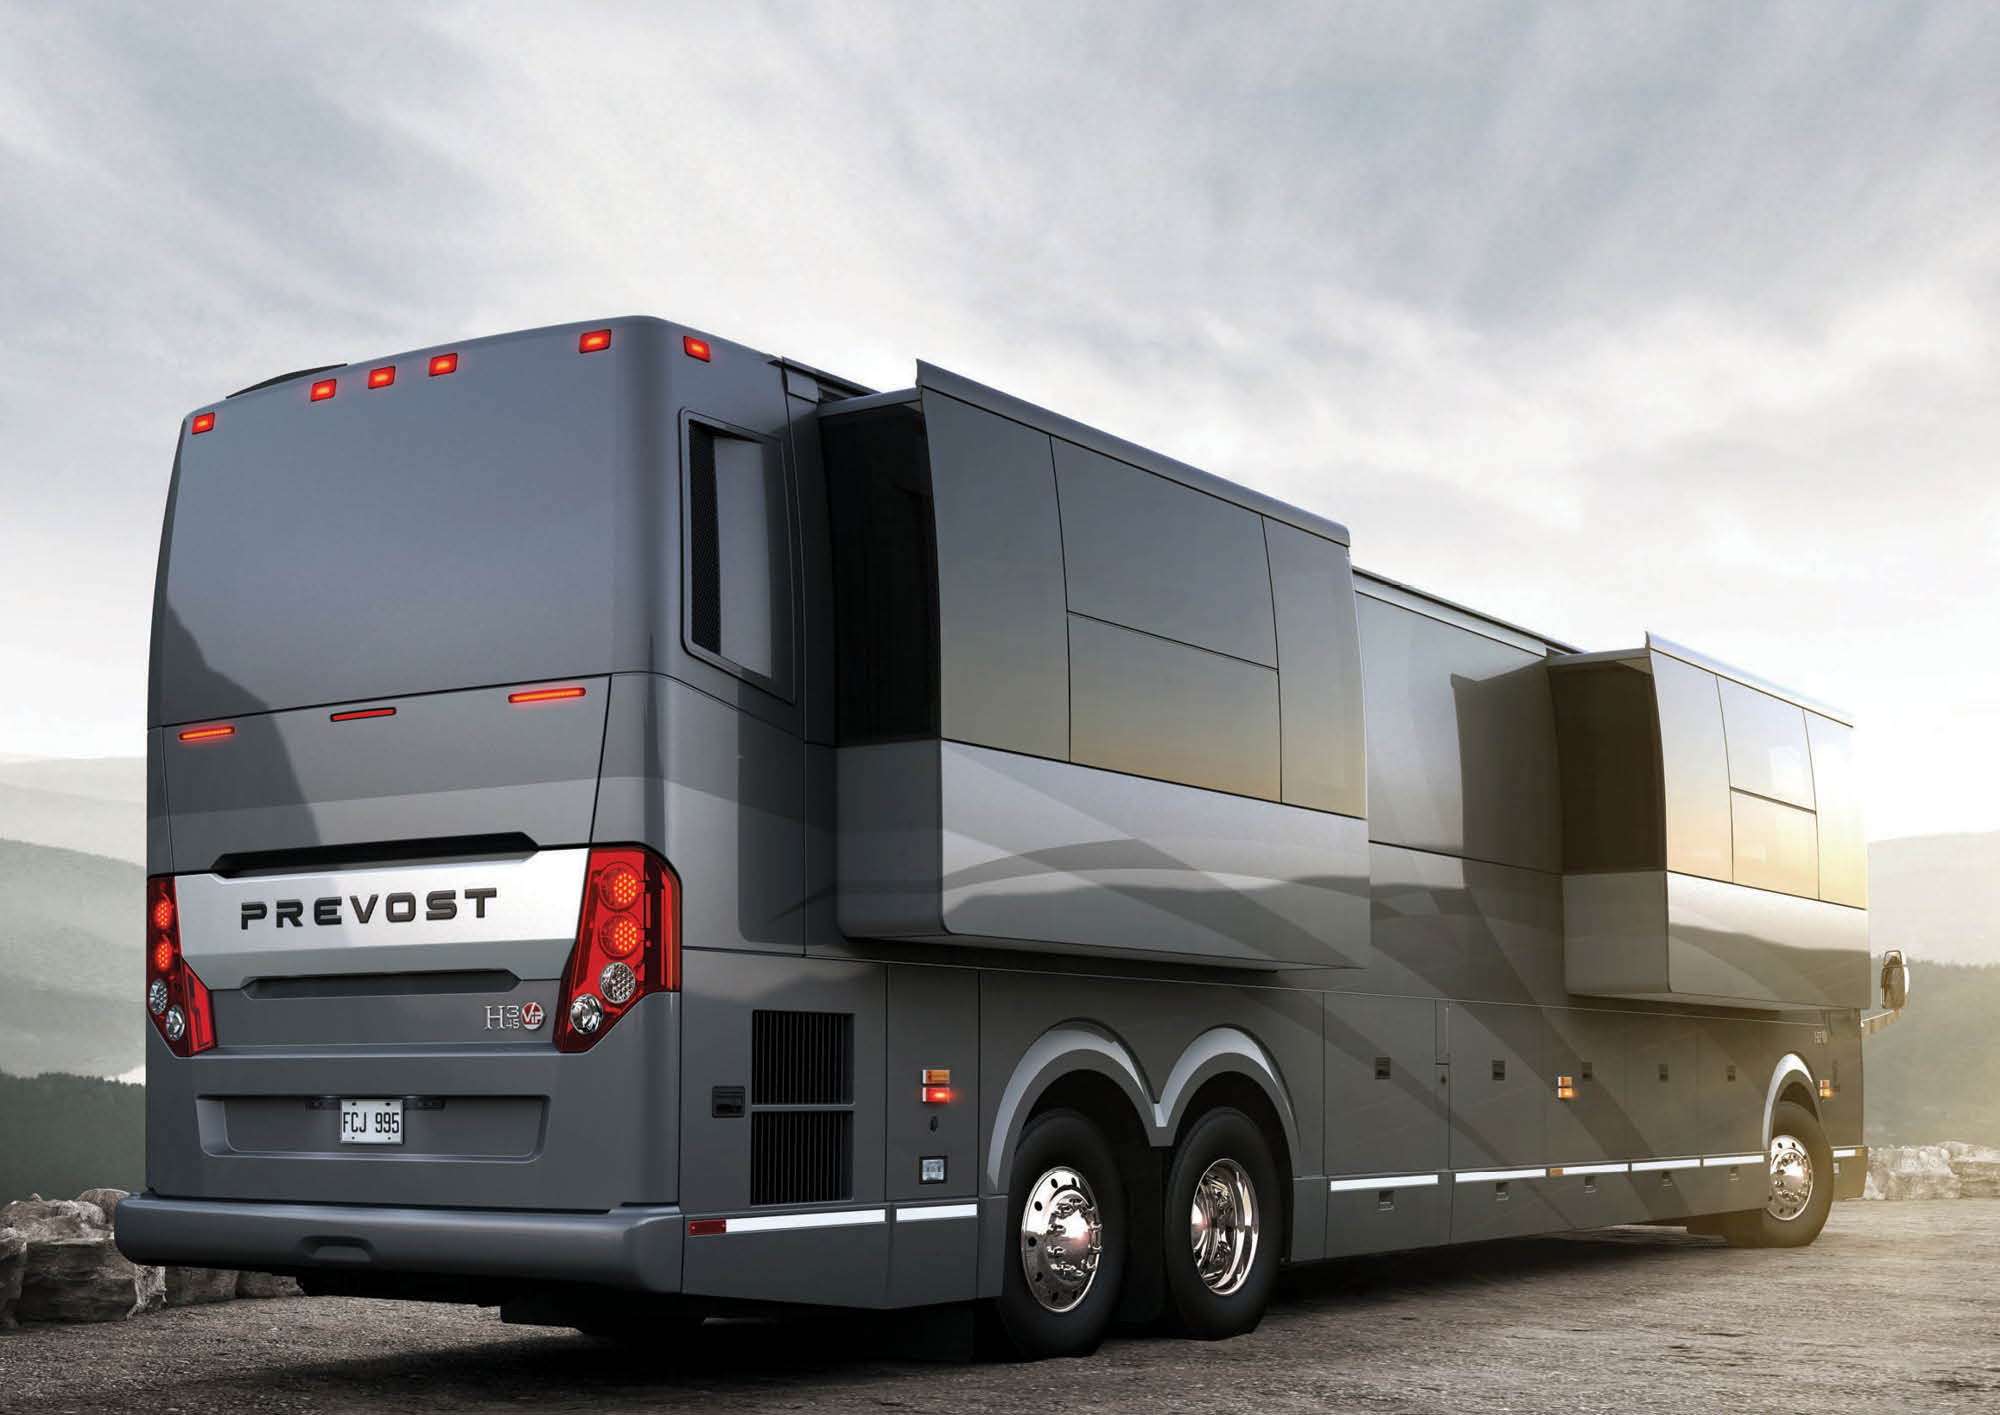 Take a Look at These Dream RVs